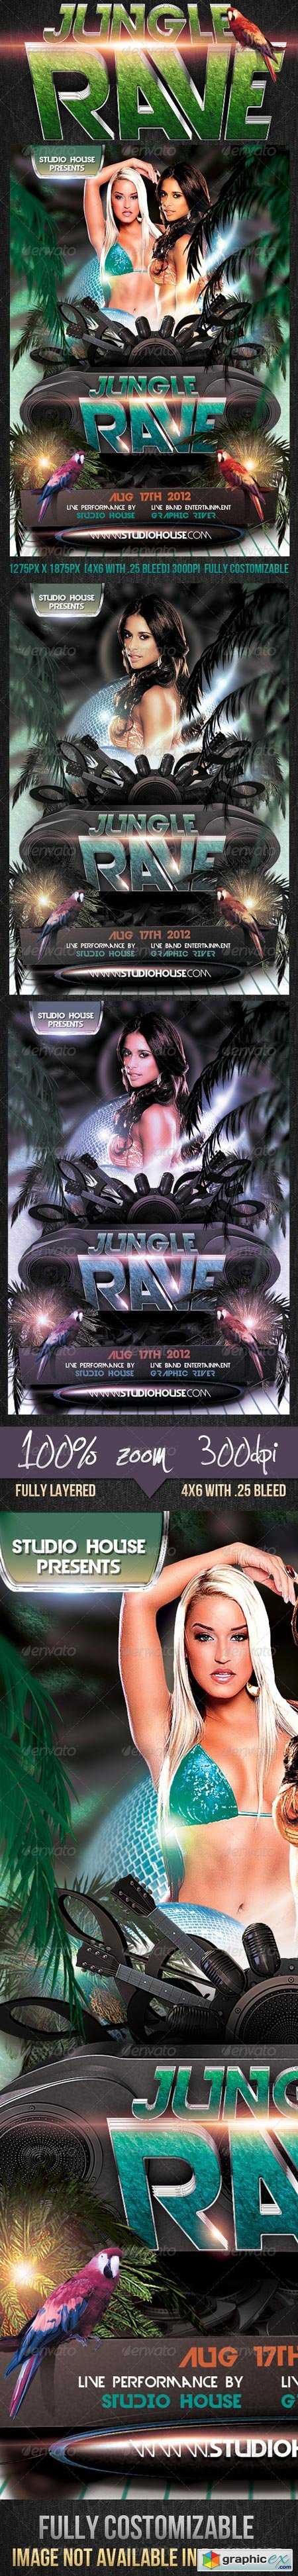 Jungle Rave Party Flyer 2648770